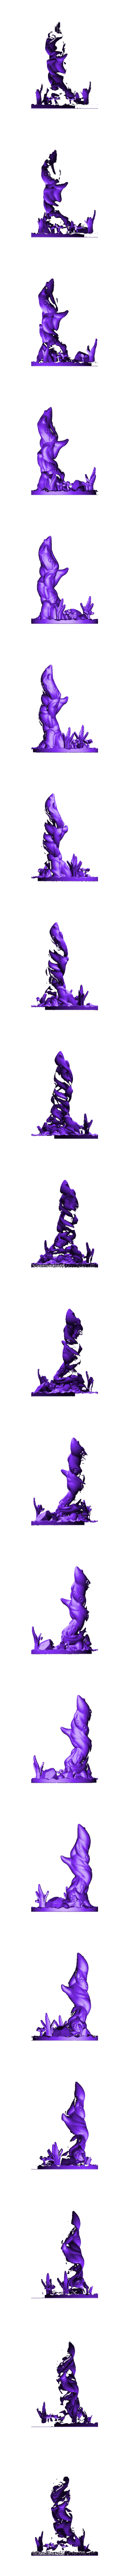 Medium_Tree_1_1.1.1.stl Download free STL file Fey Tree - with and without canopy • 3D printable object, BellForged